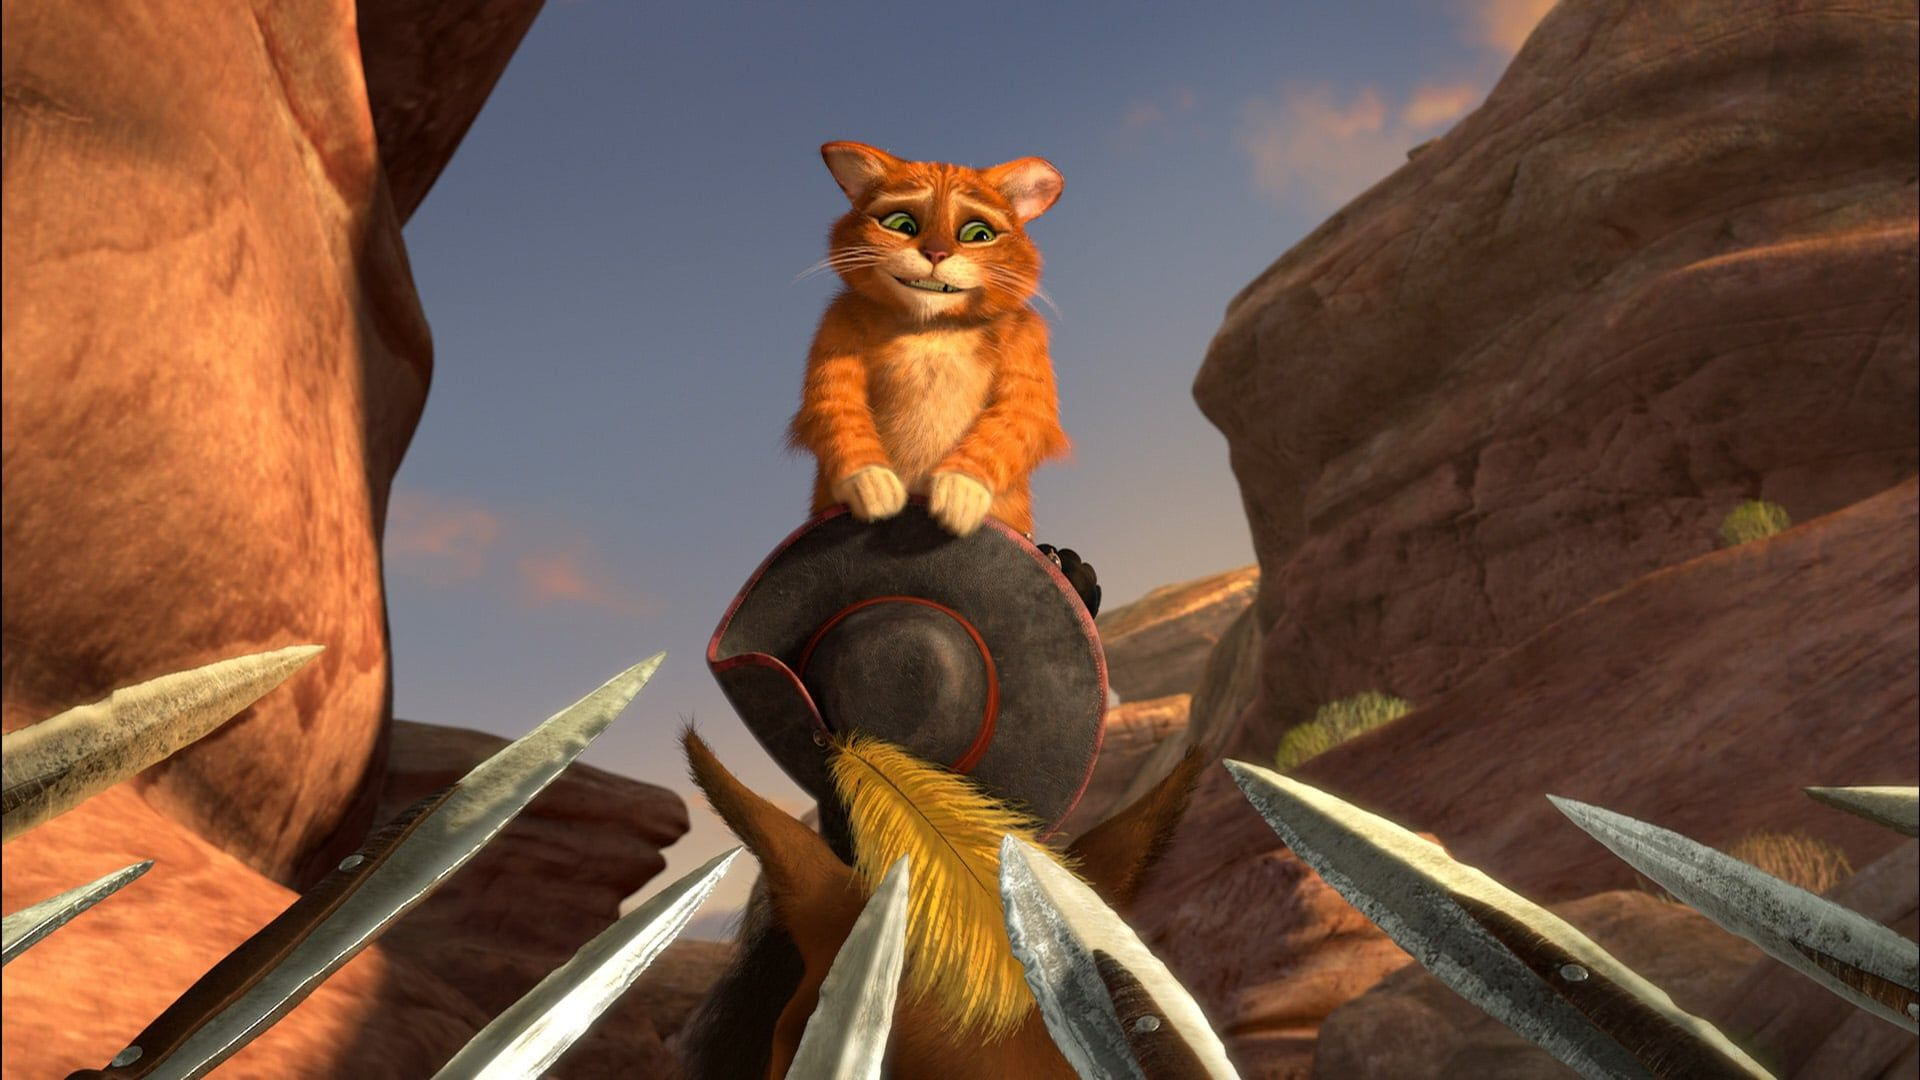 puss in boots: the three diablos: where to watch it streaming online